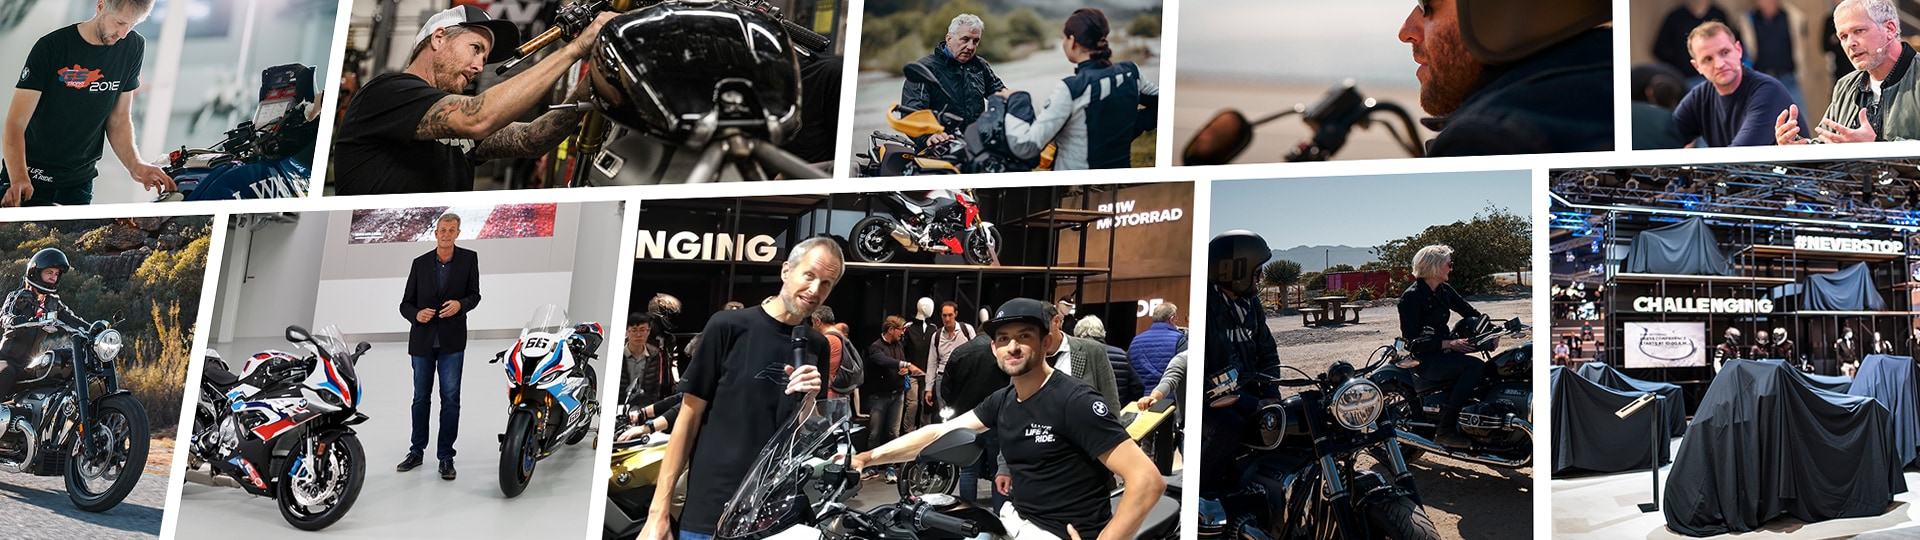 Scramblers domi and Langers syndrome | Adventure Rider